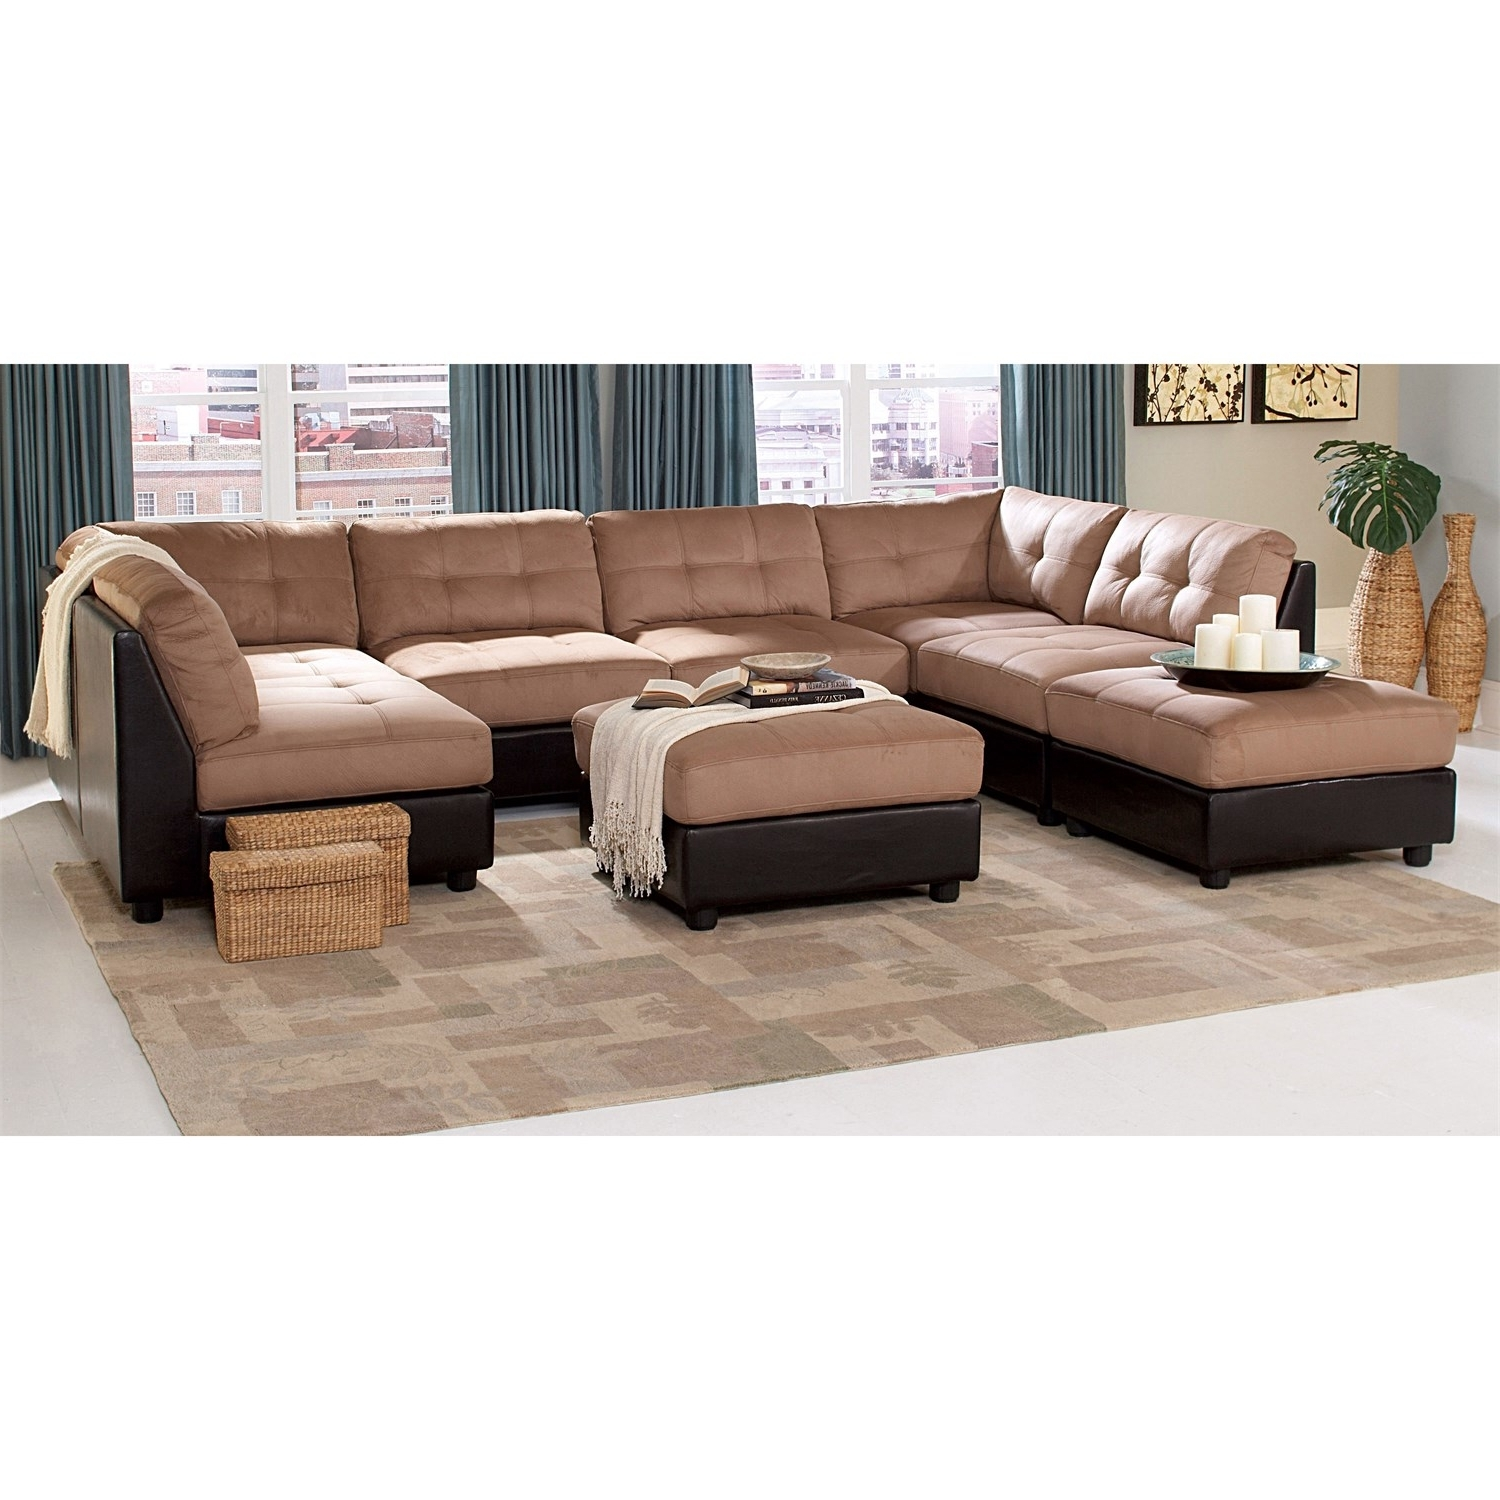 Newest Coaster Furniture 551001/4 551002/2 Claude 6 Piece Brown Sectional In Macon Ga Sectional Sofas (View 11 of 15)